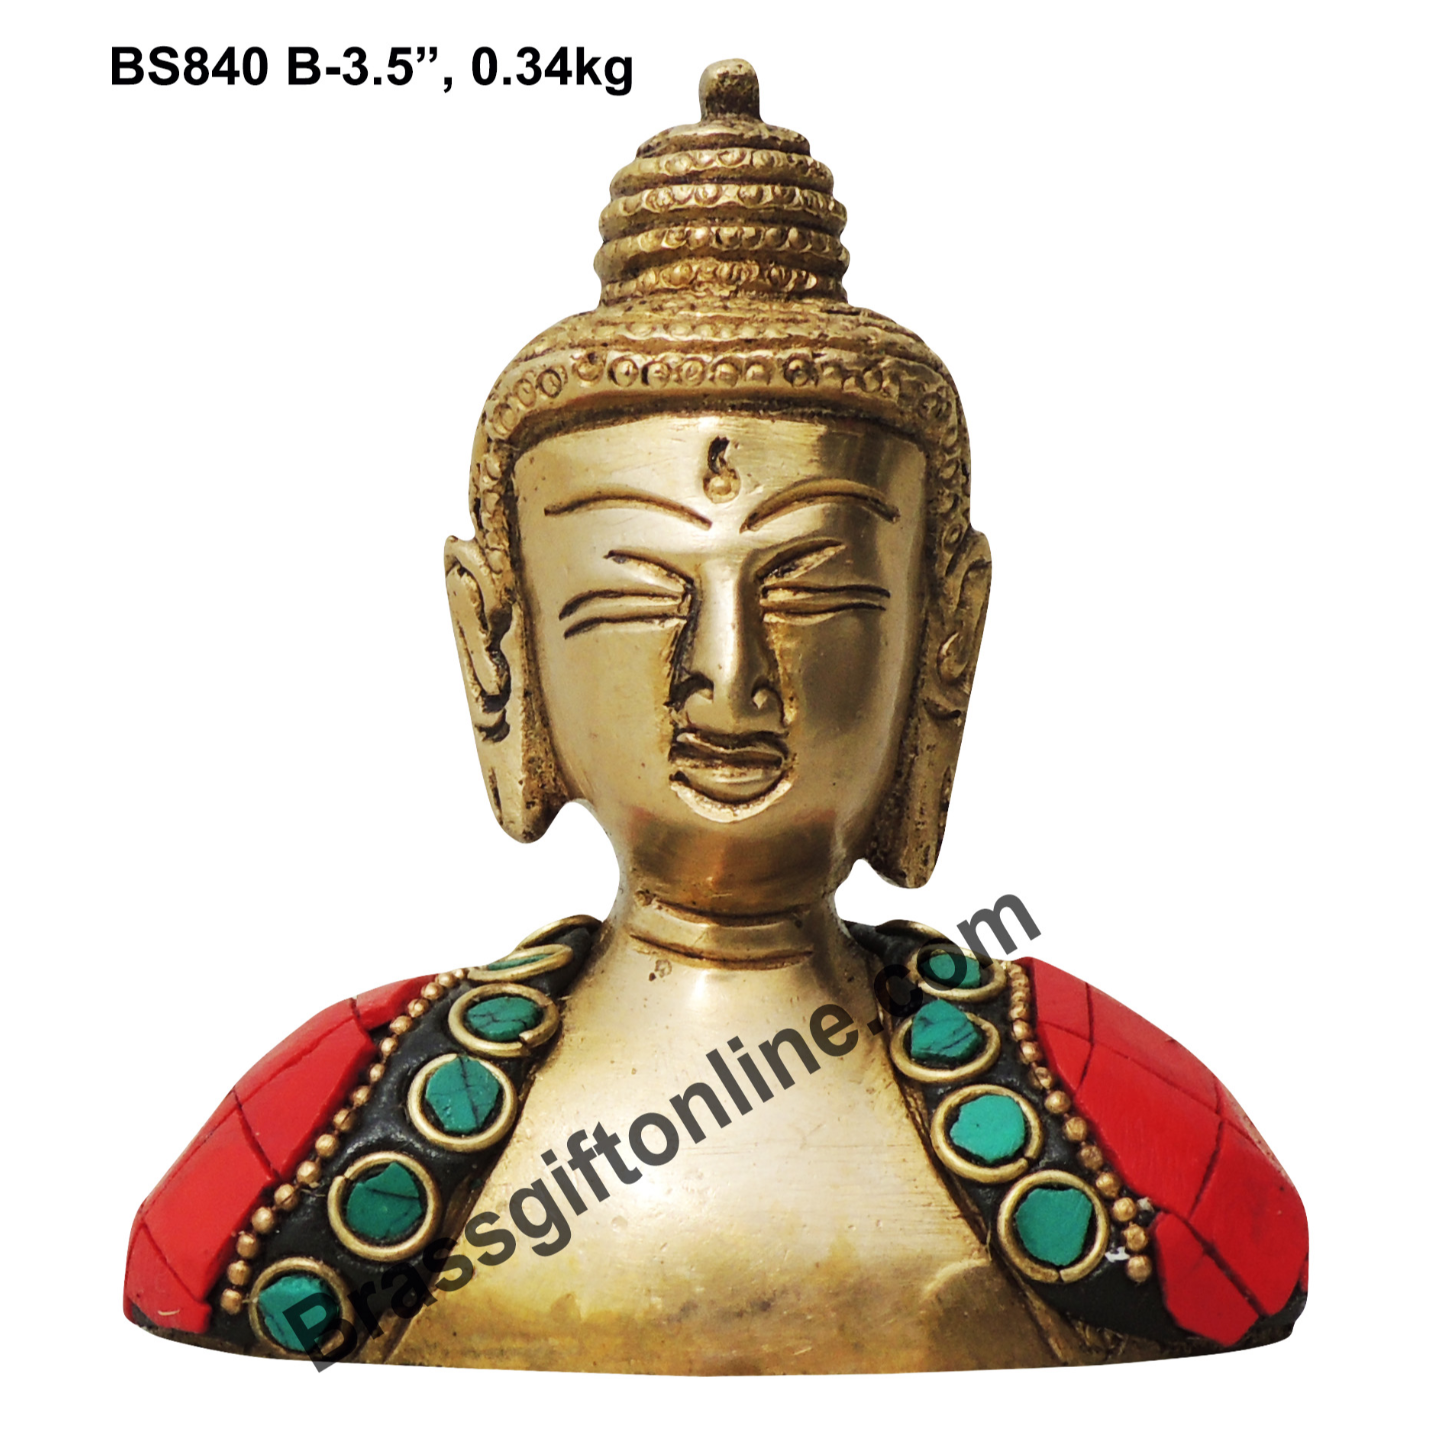 Brass Buddha Head studded with Turquoise Coral stone work - 313.5 Inch  BS840 B